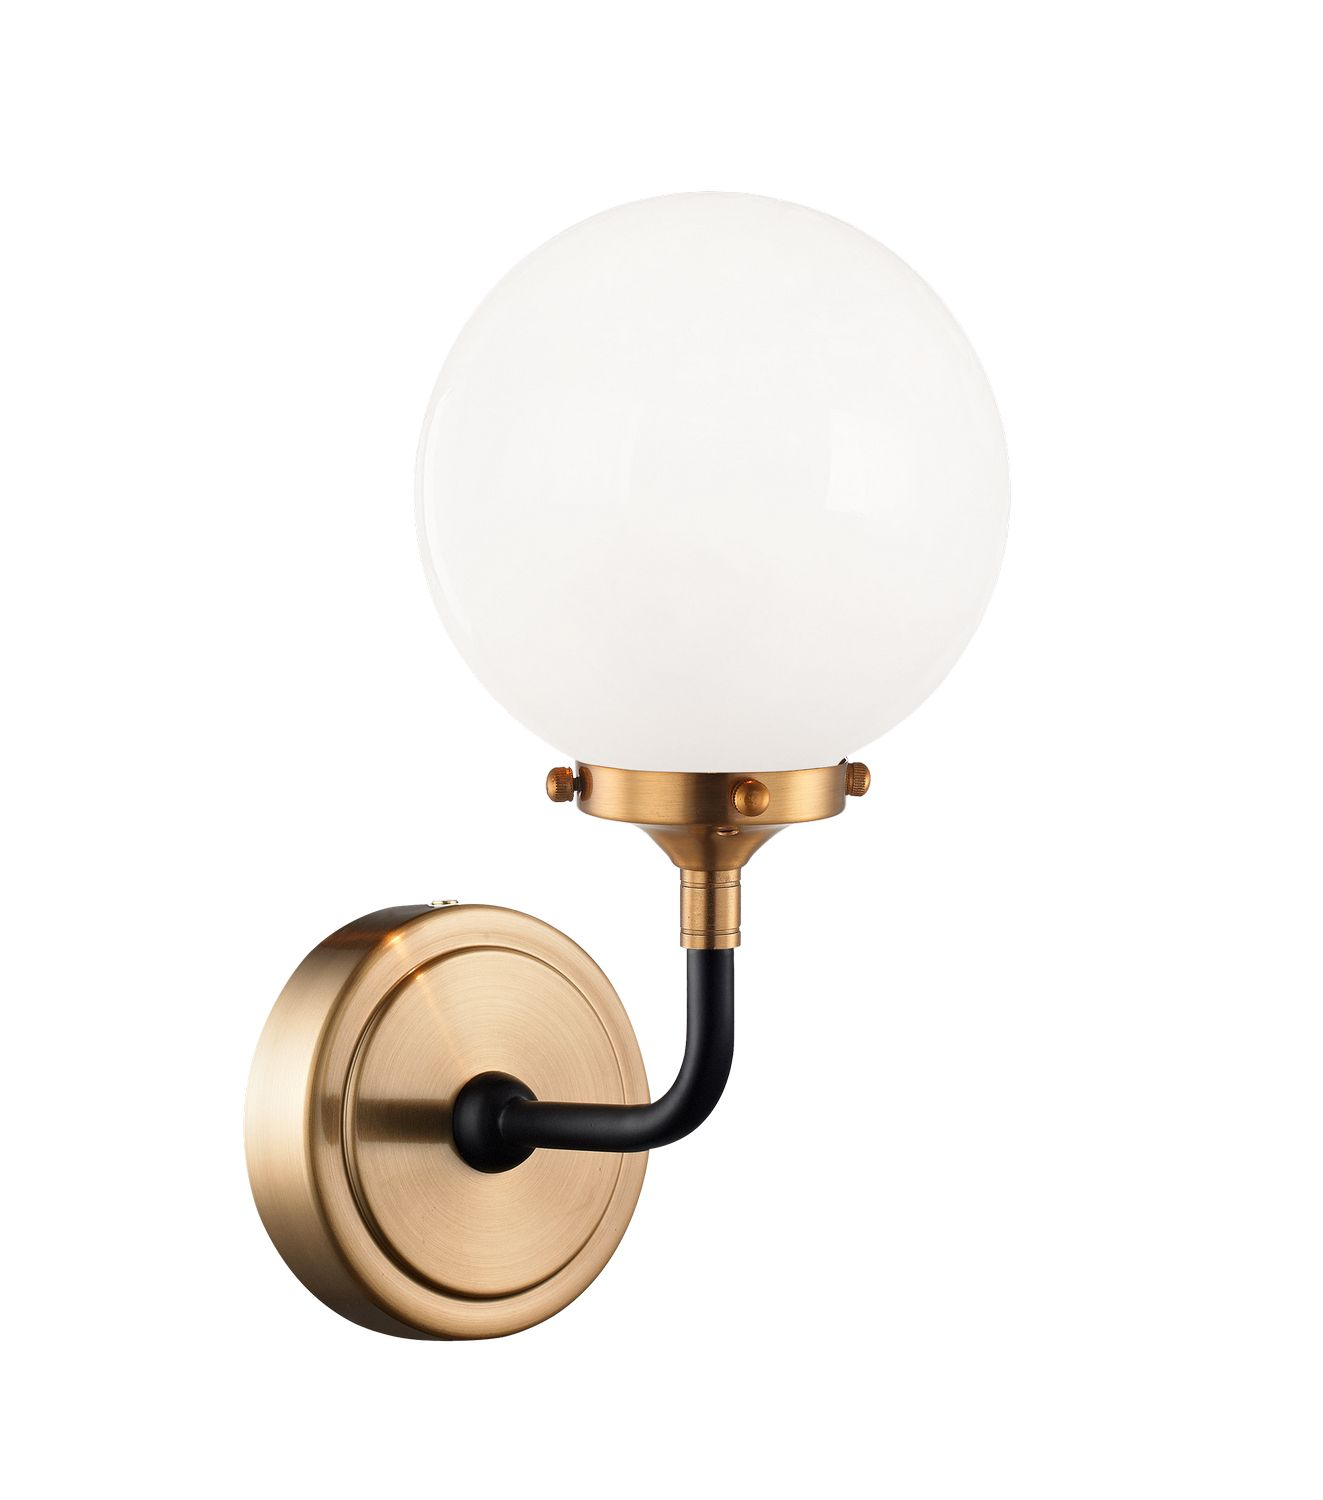 One Light Wall Sconce In 2021 Wall Lights Wall Sconce Lighting Sconces